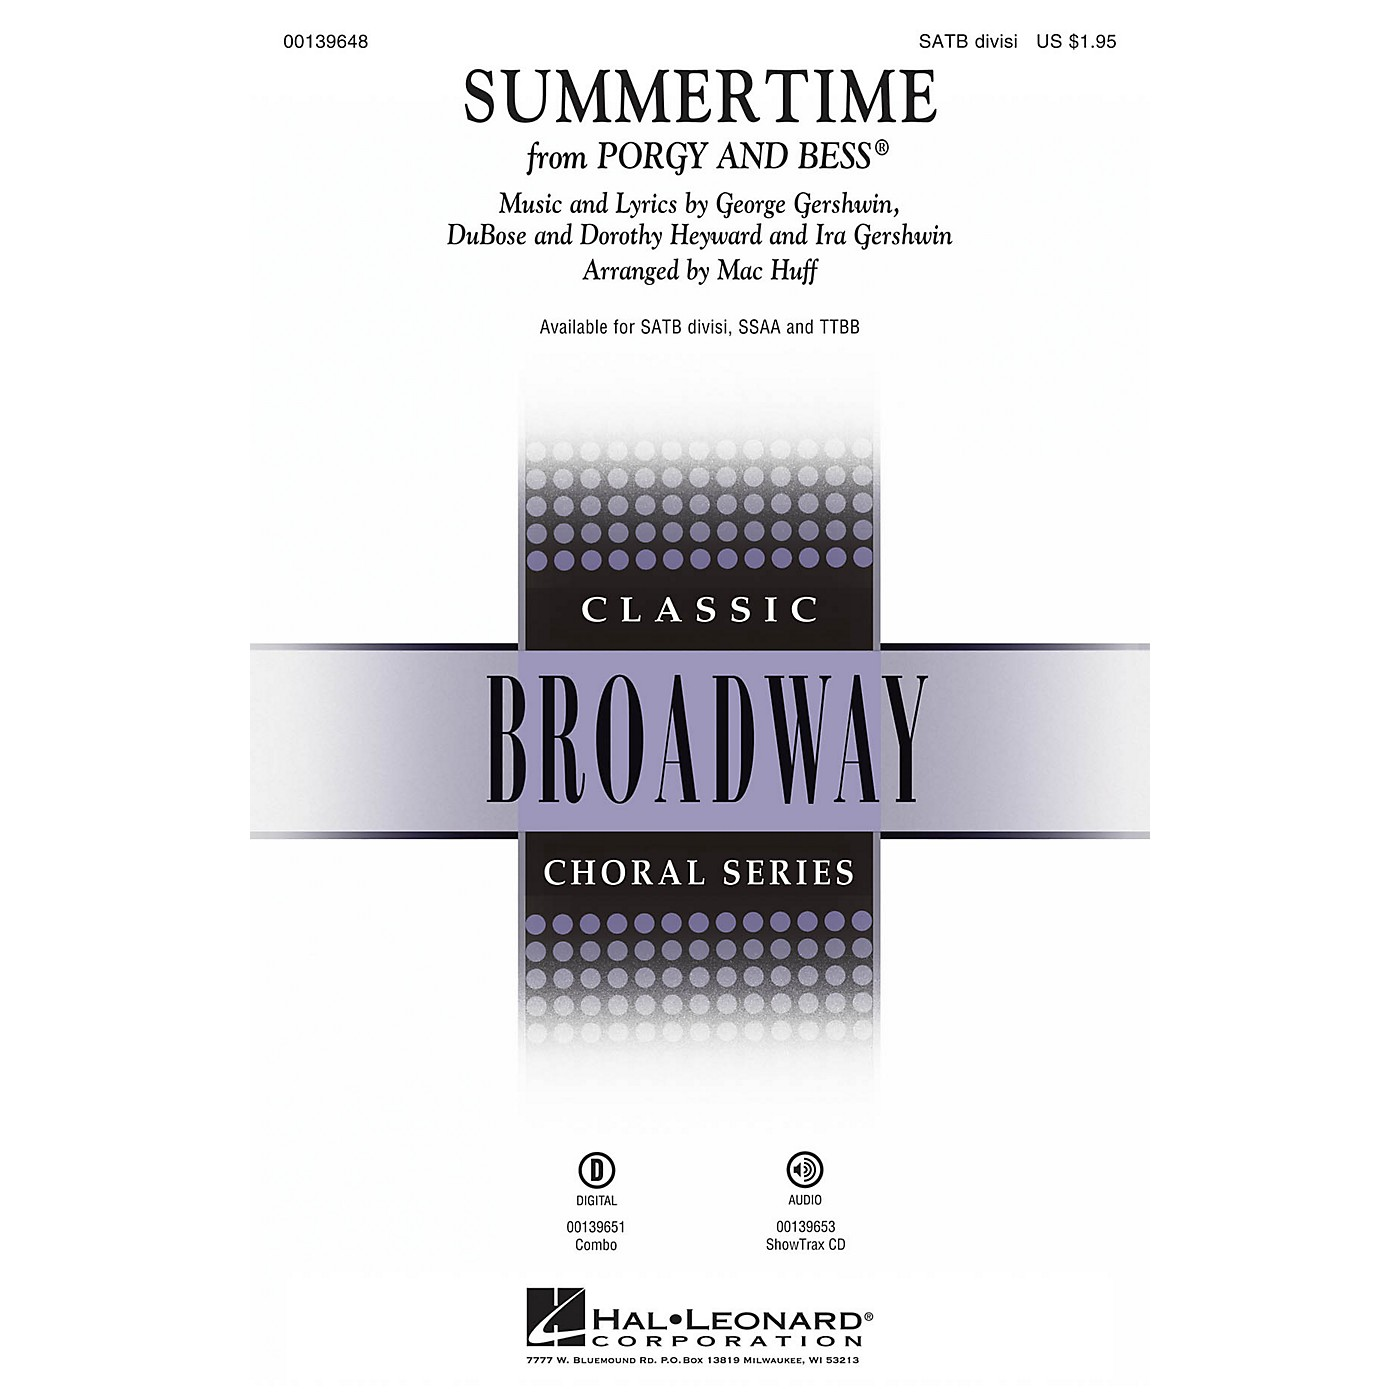 Hal Leonard Summertime (from Porgy and Bess) SATB Divisi arranged by Mac Huff thumbnail